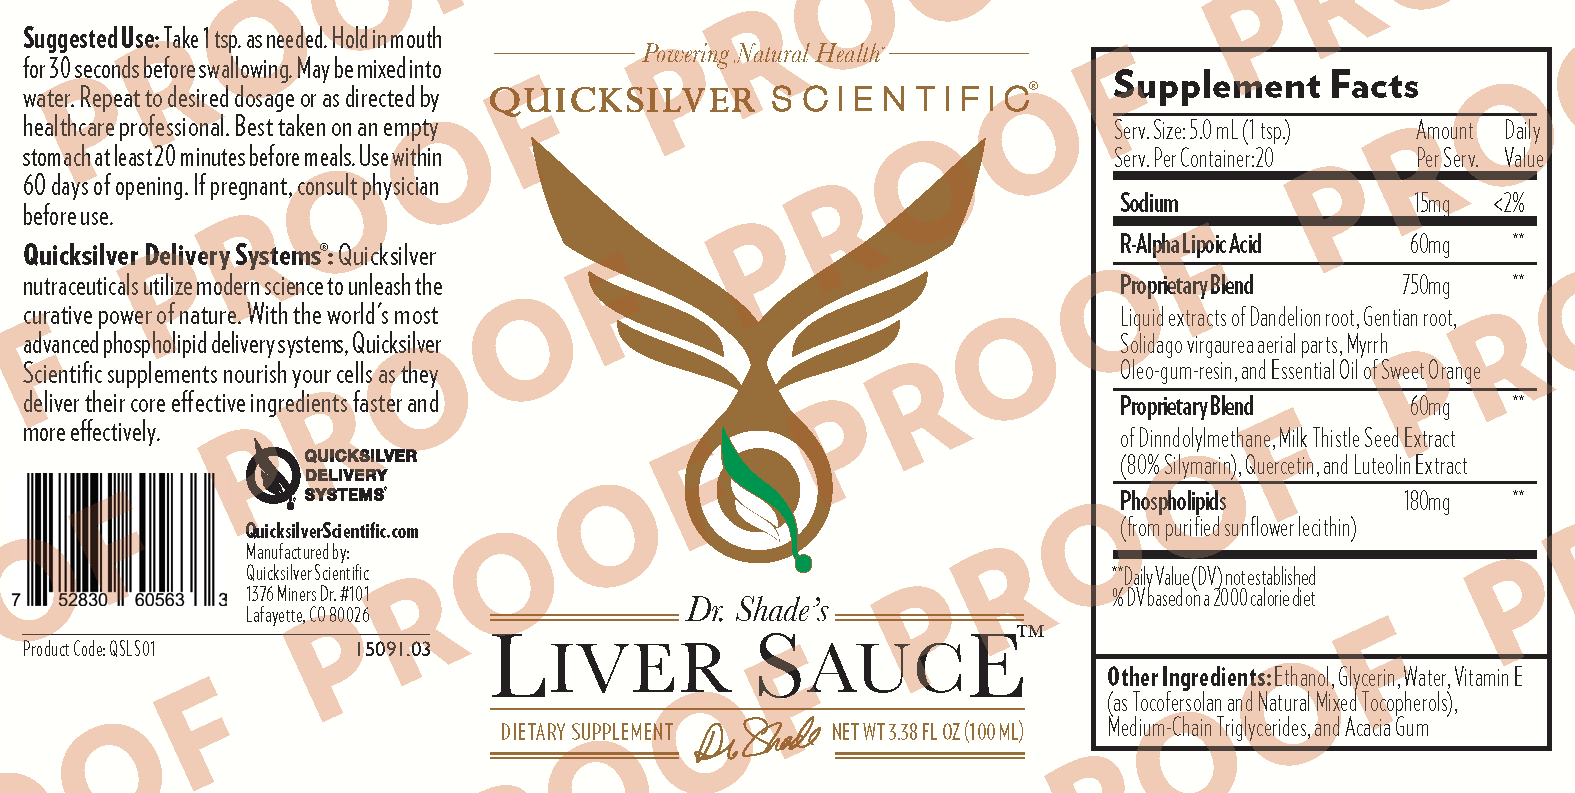 Liver Sauce 100ml Herbal Line 1509103 Hypericum Oil / St. John's Wort